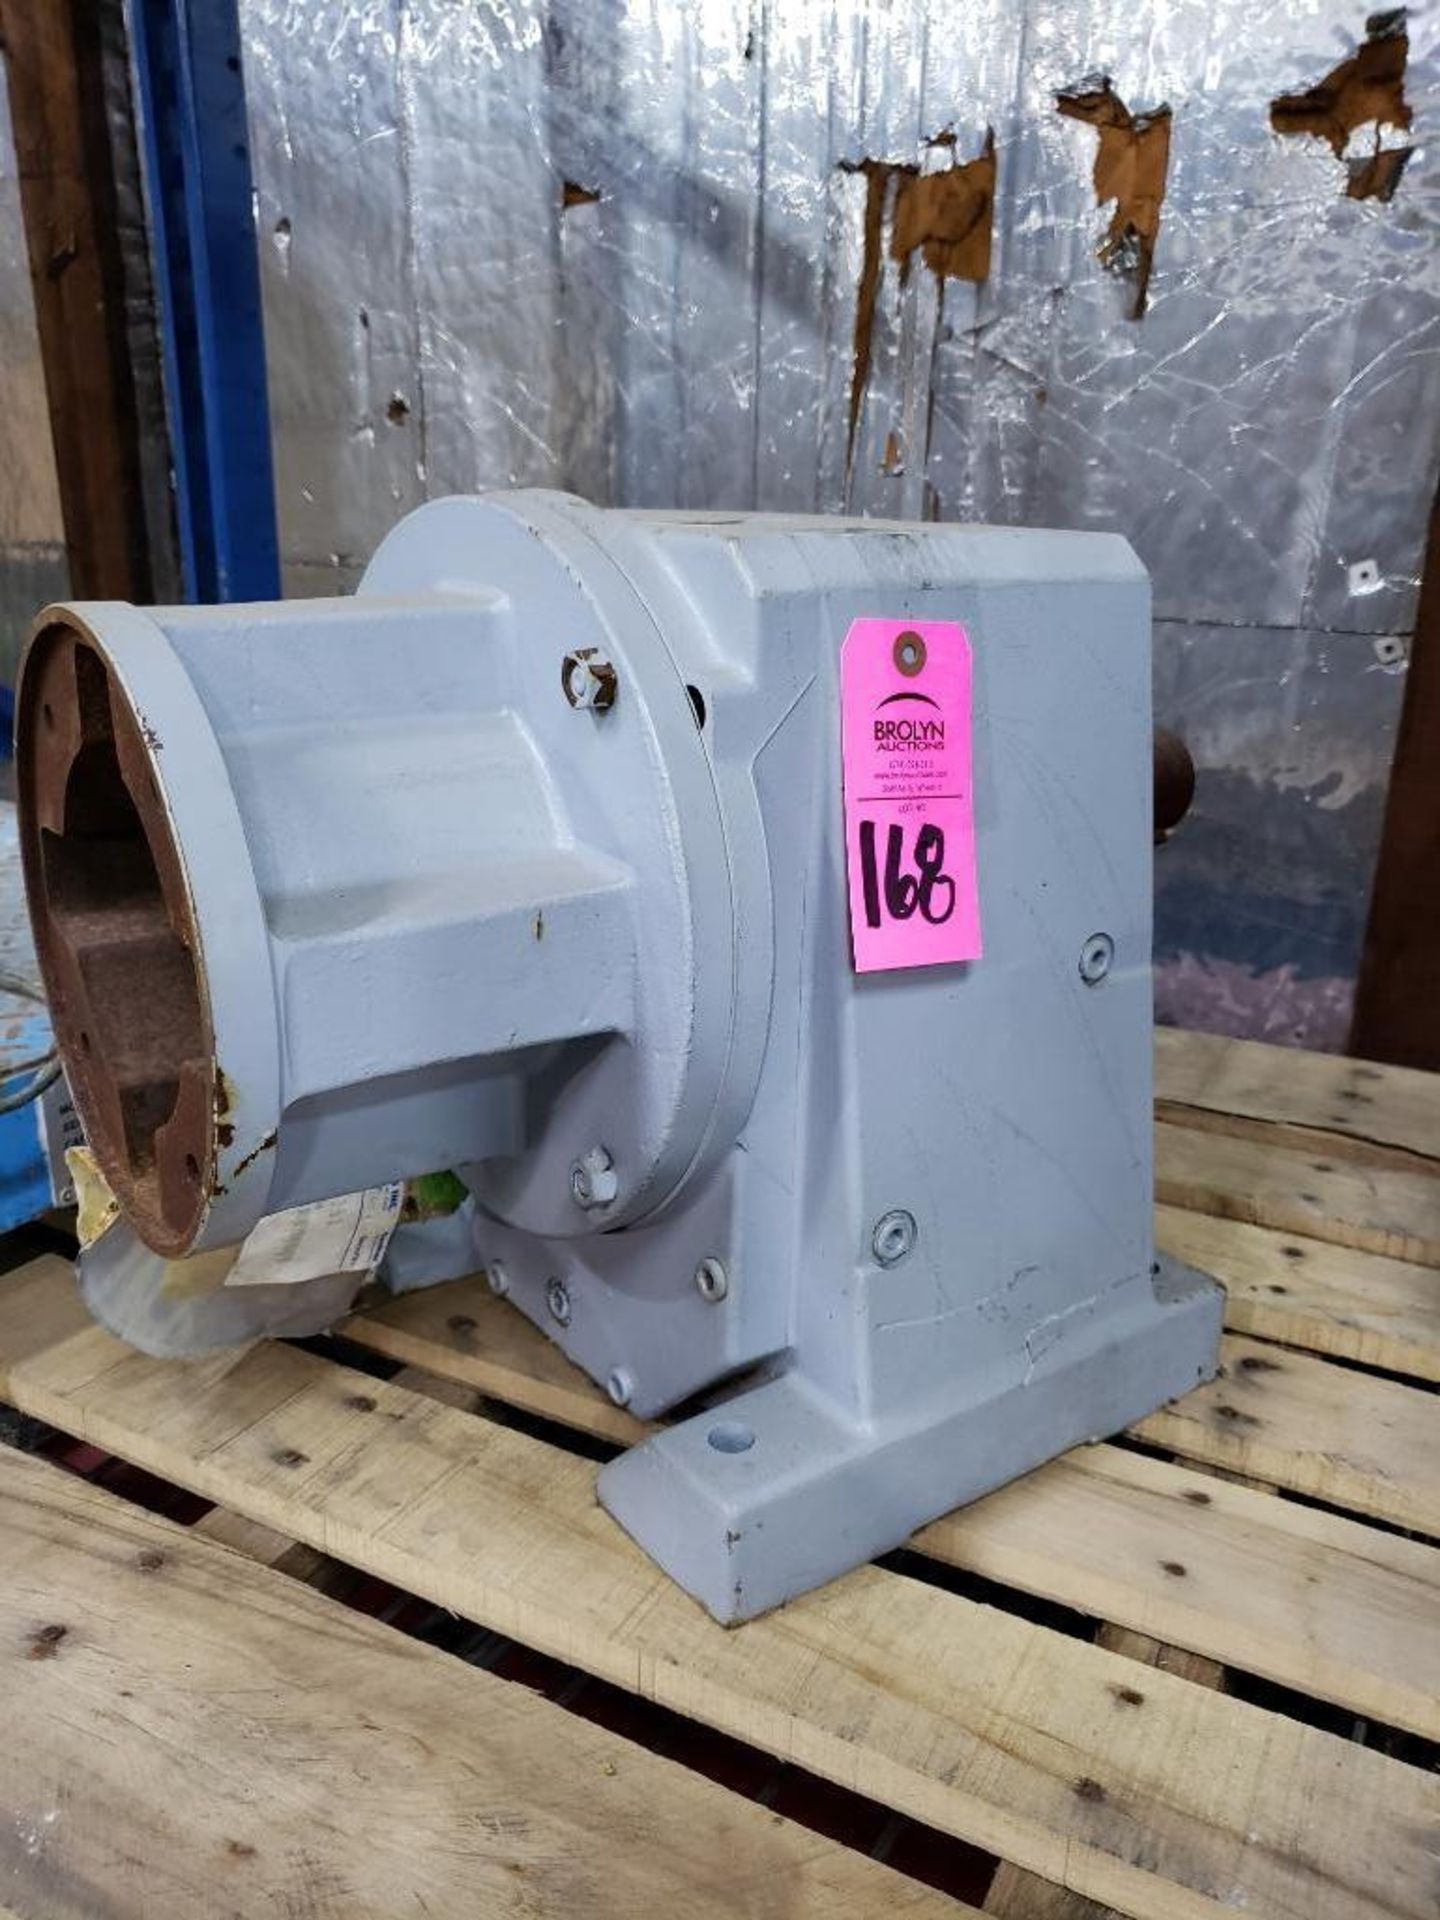 Lot 168 - Stober gearbox reducer drive ratio 23.2 to 1.